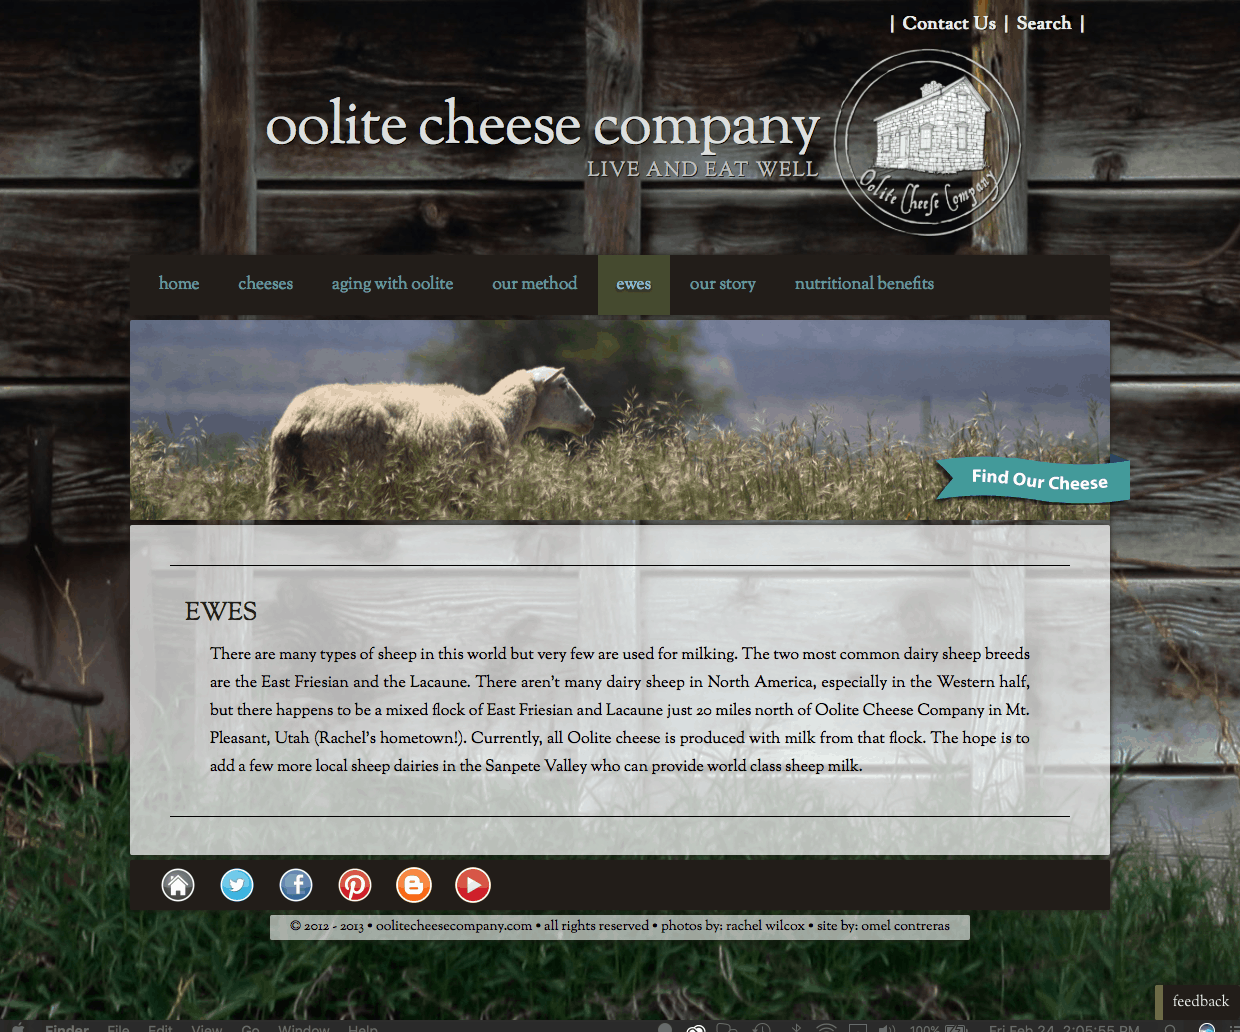 Oolite Cheese Company